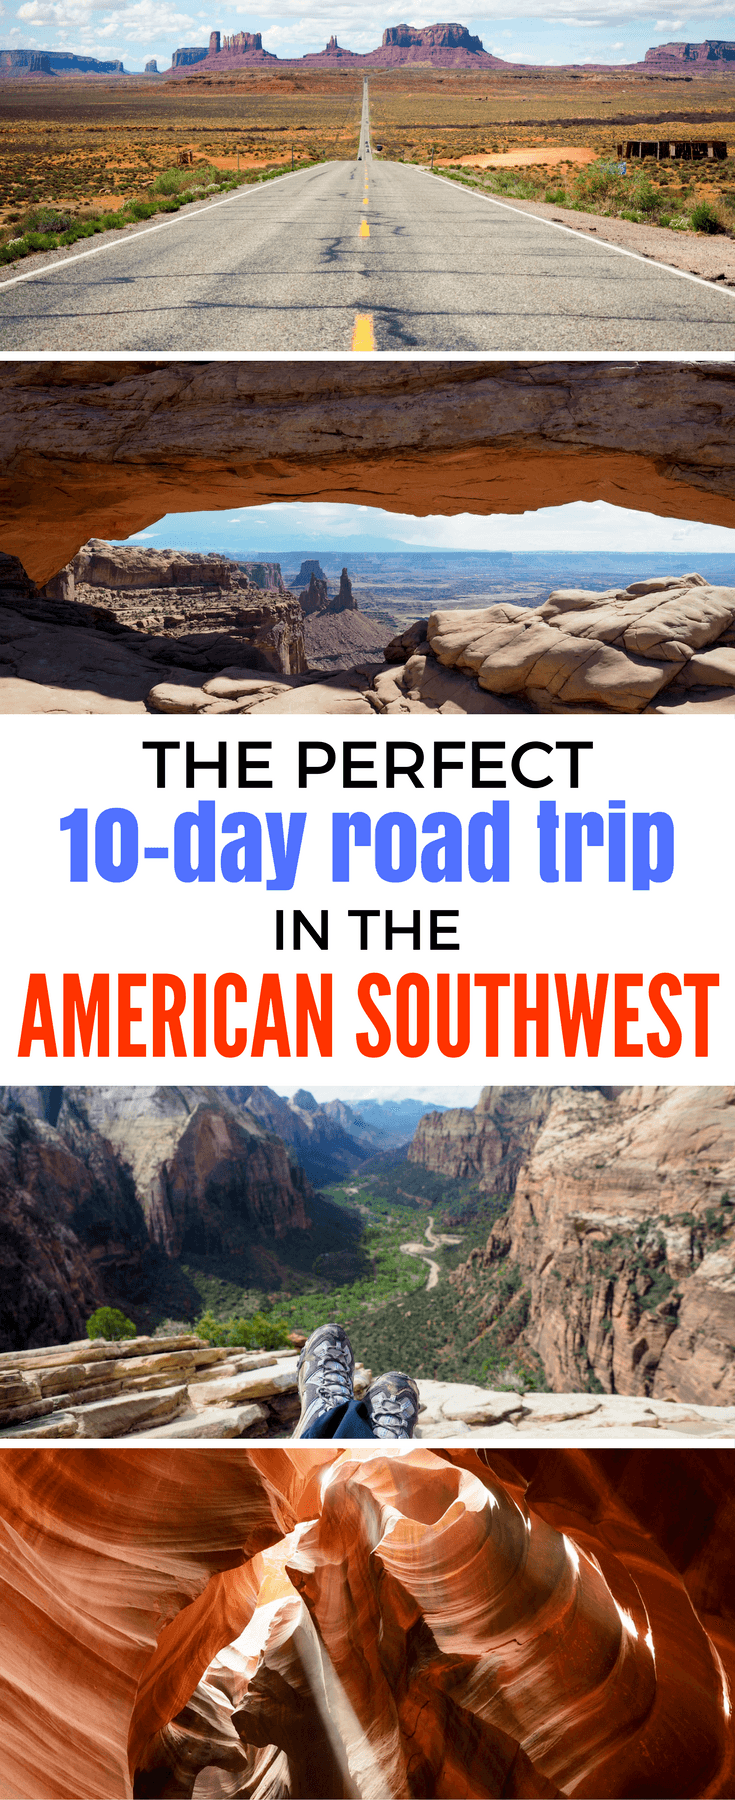 The perfect itinerary for a 10-day road trip in the American Southwest